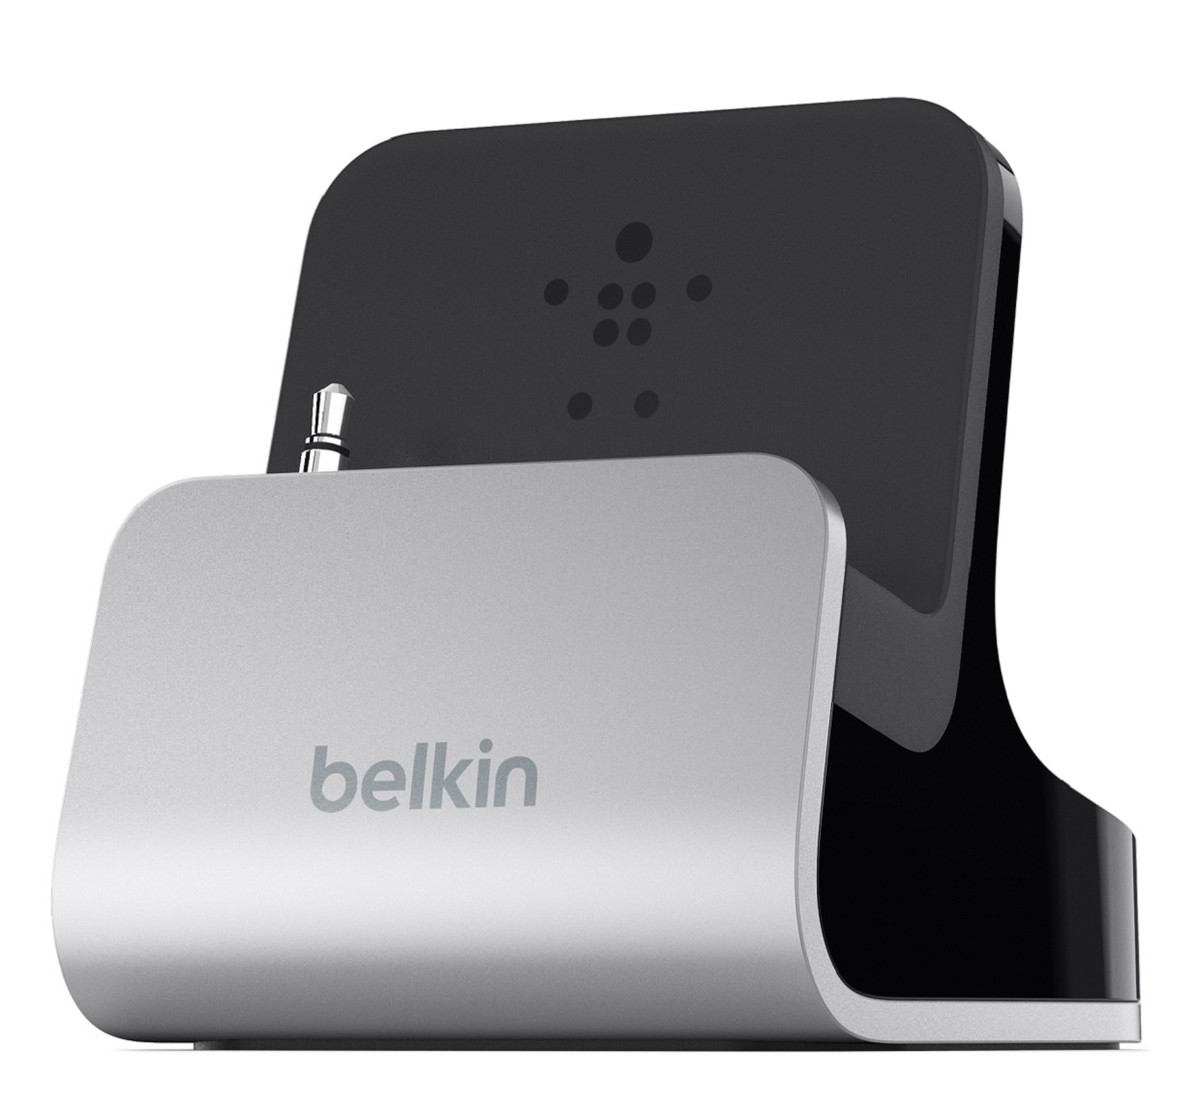 Belkin first out the gate with Lightning accessories, a new dock and car charger arriving later this month